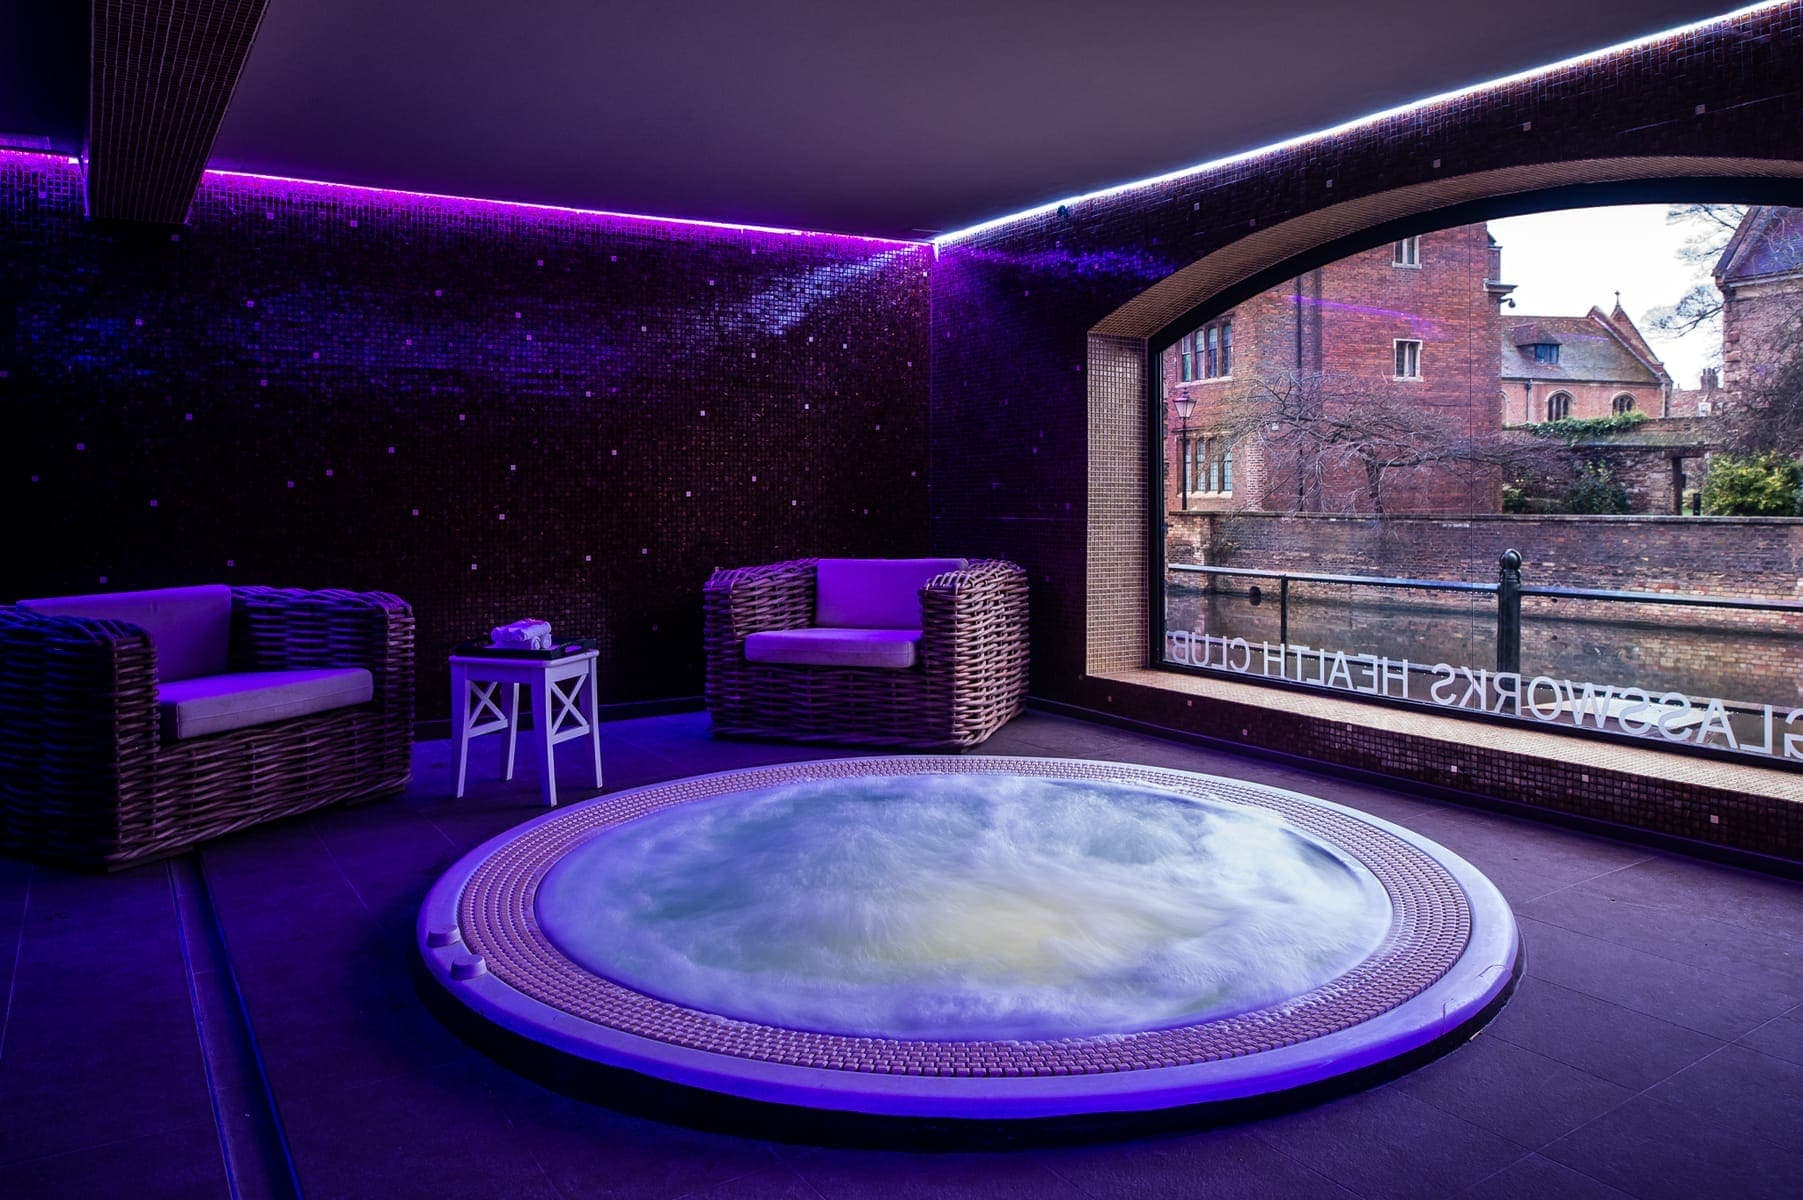 Jacuzzi tub with bubbles